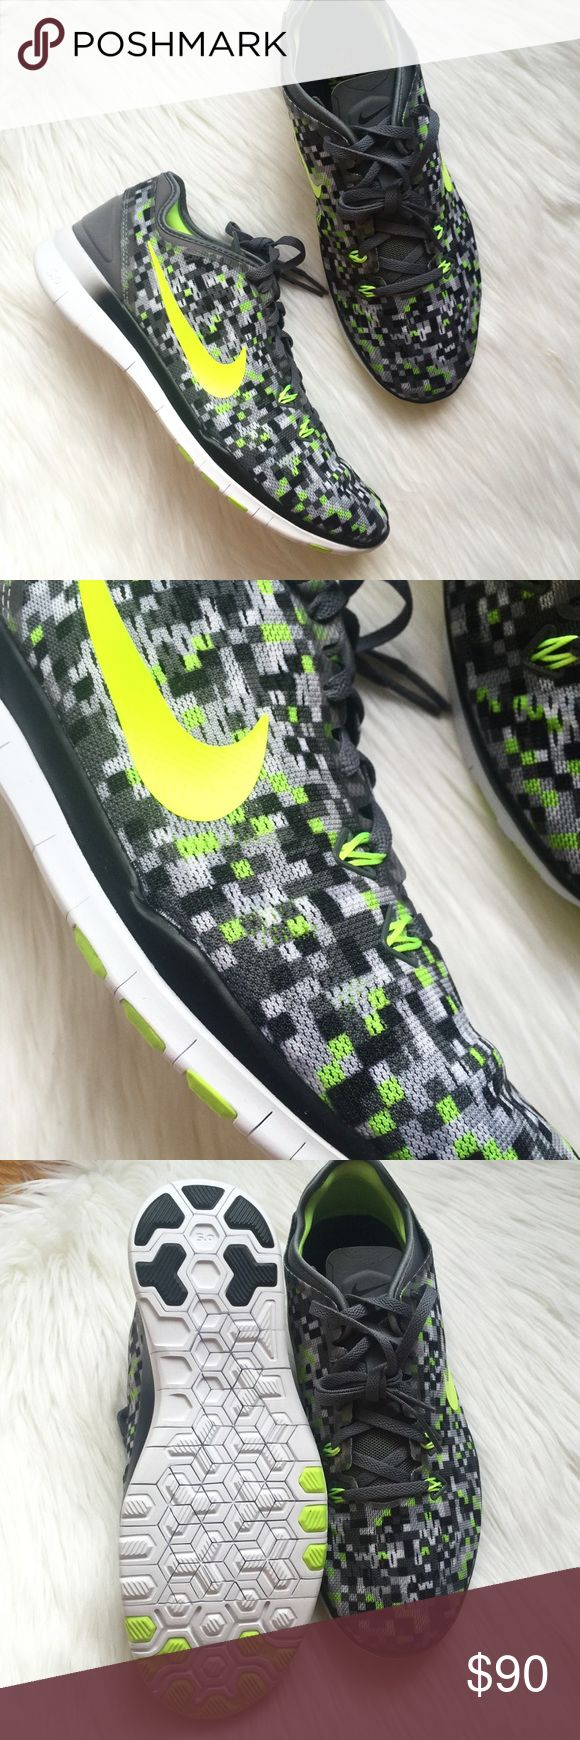 New NIKE FREE 5.0 Black & Neon Running Shoes! Brand new! Unfortunately I have too many pairs and have never worn these! In perfect condition! Any questions, please ask! Size 8.5 Nike Shoes Athletic Shoes